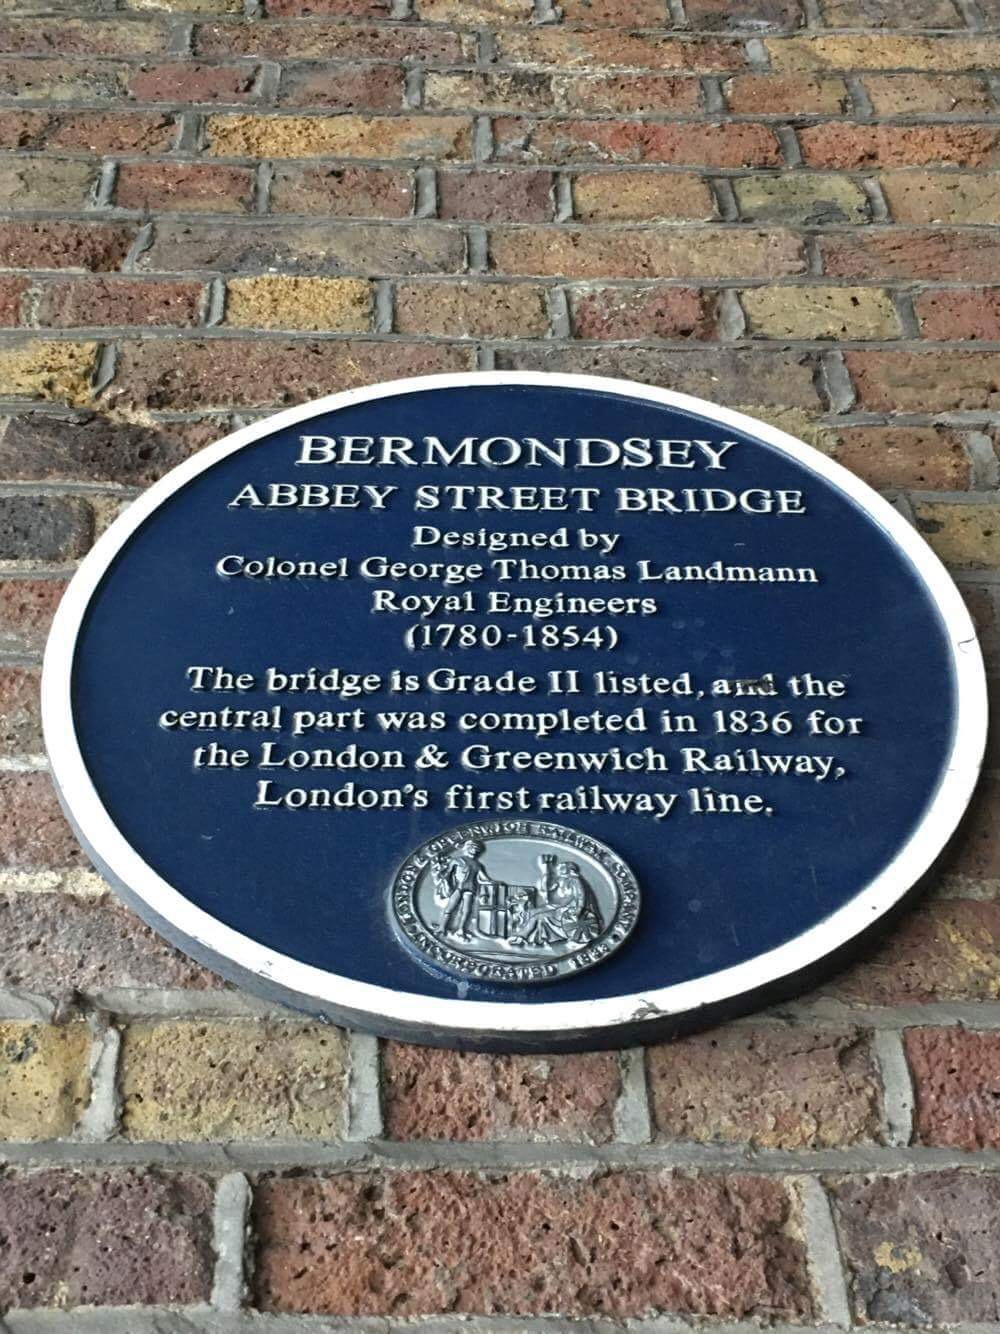 Plaque in Abbey Street